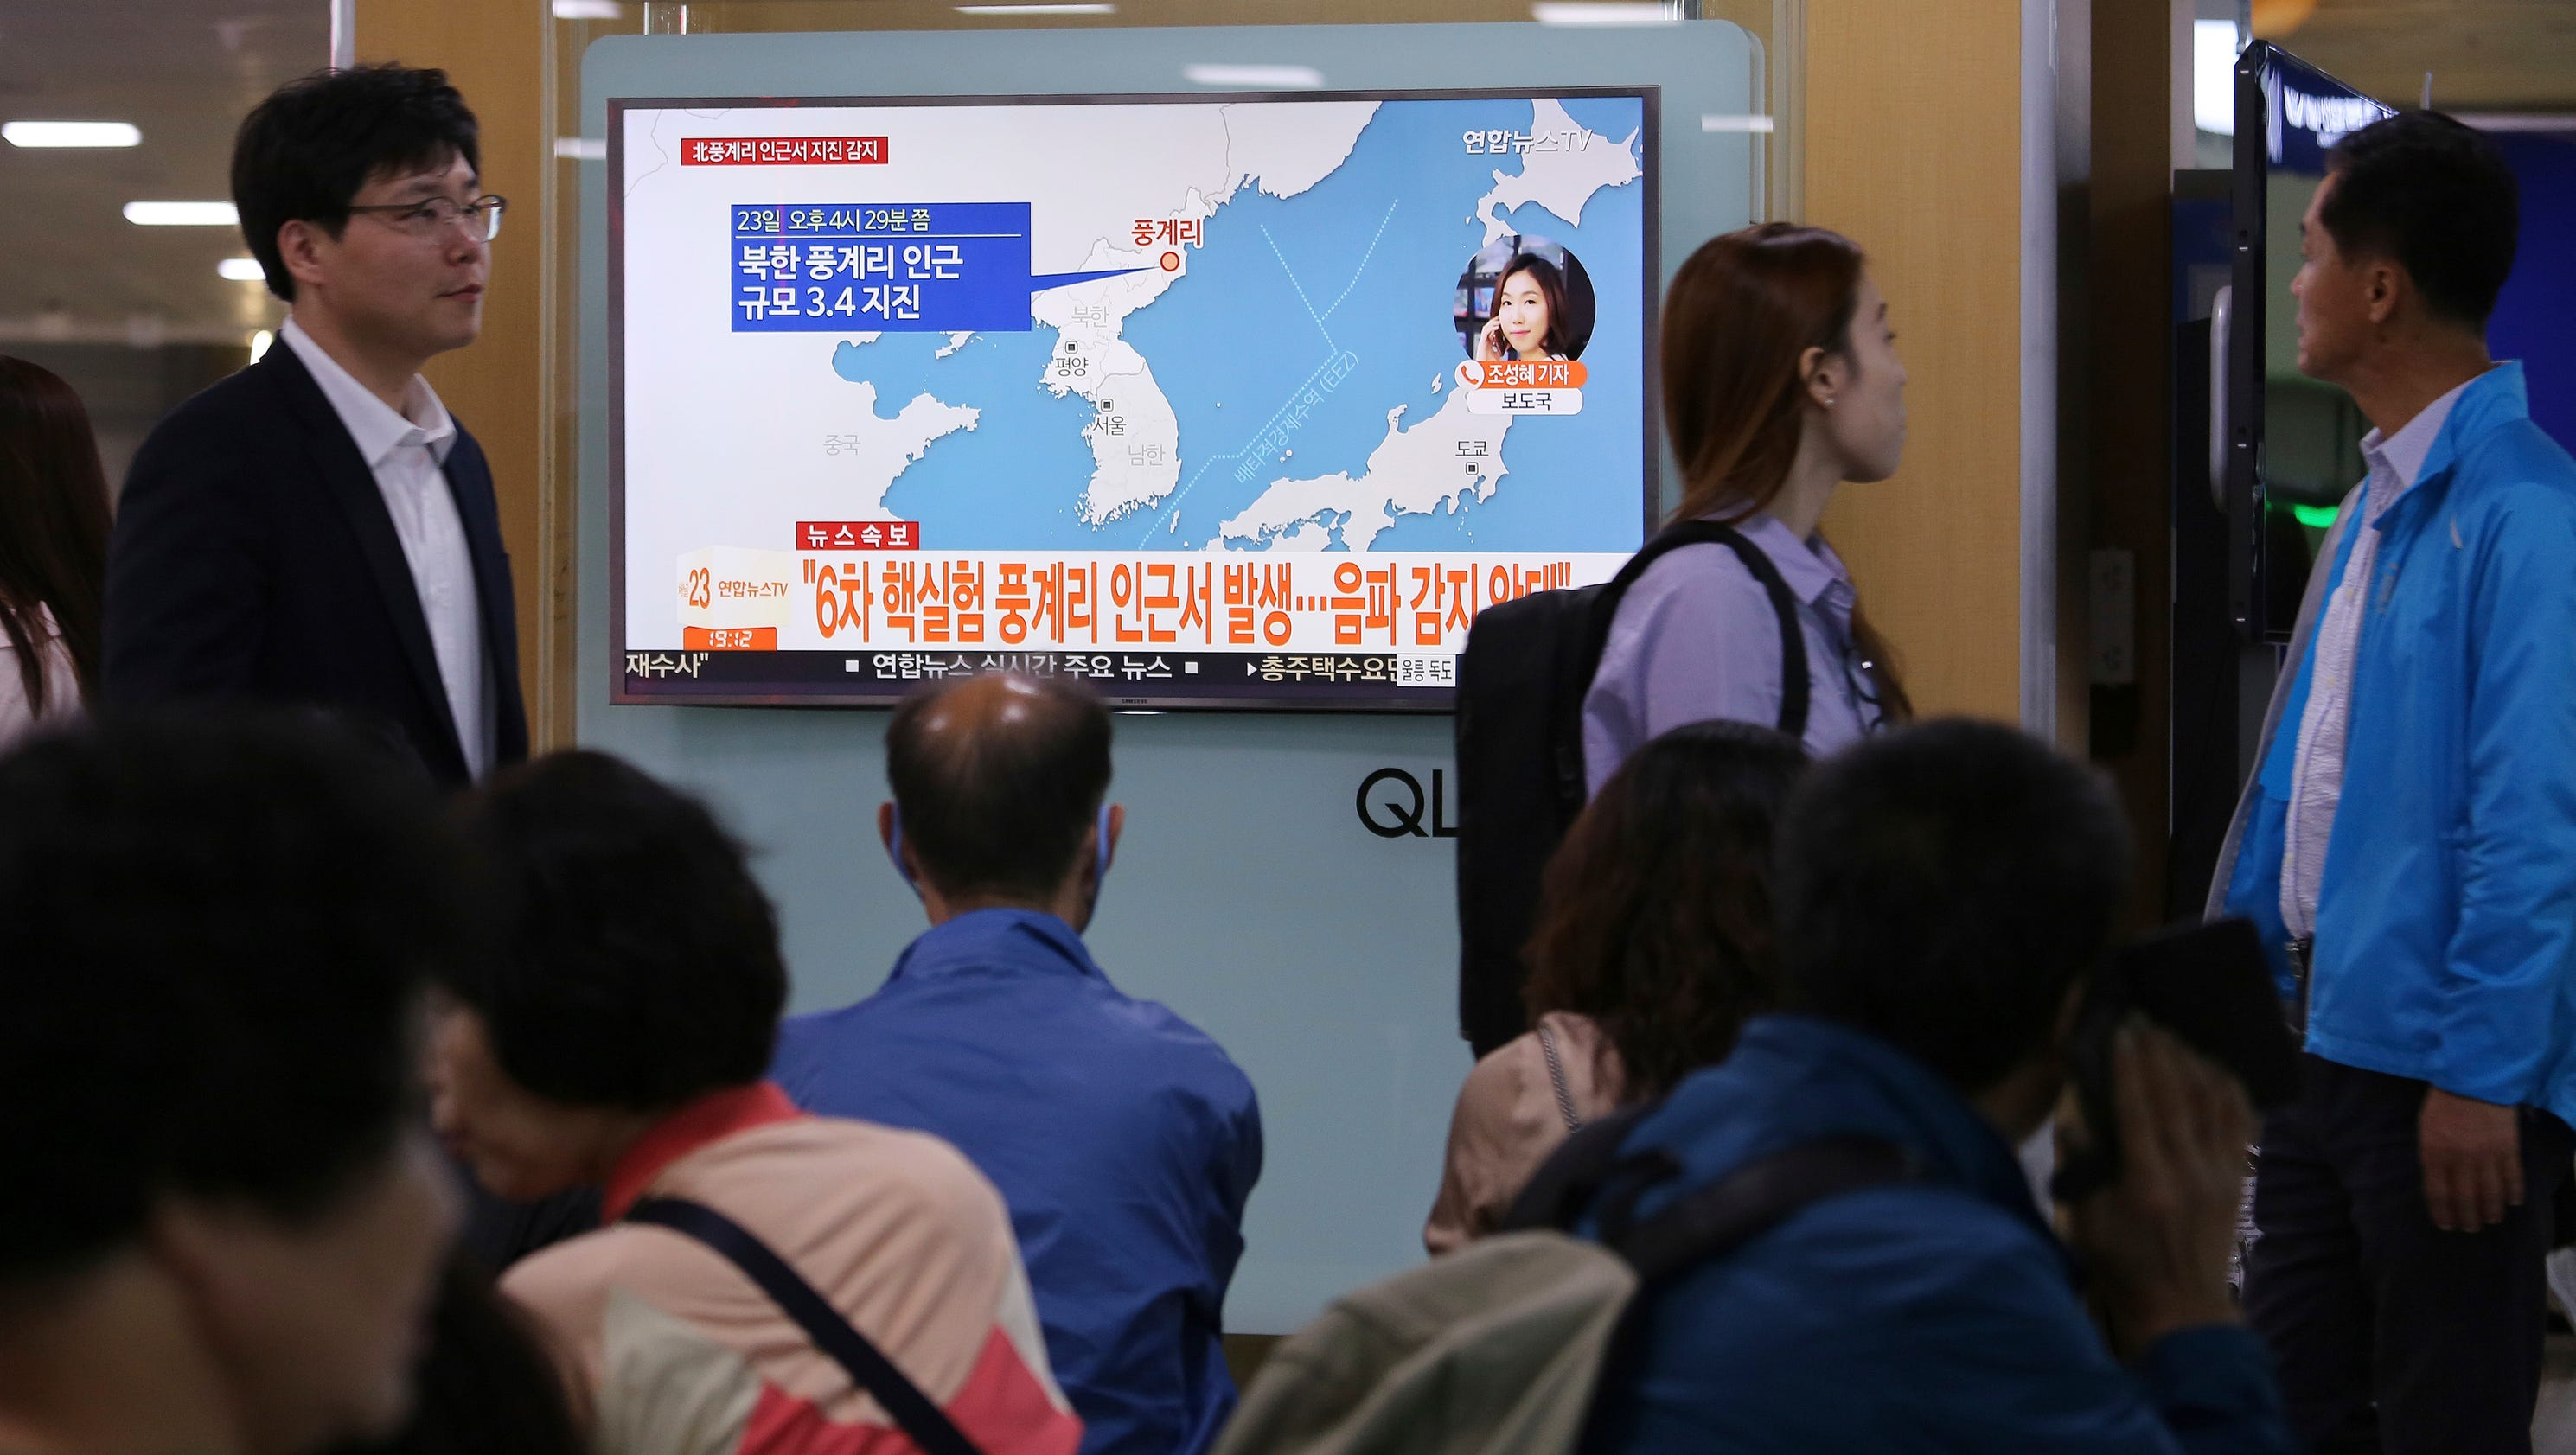 Quake detected in North Korea; monitors differ on whether the source is natural or man-made